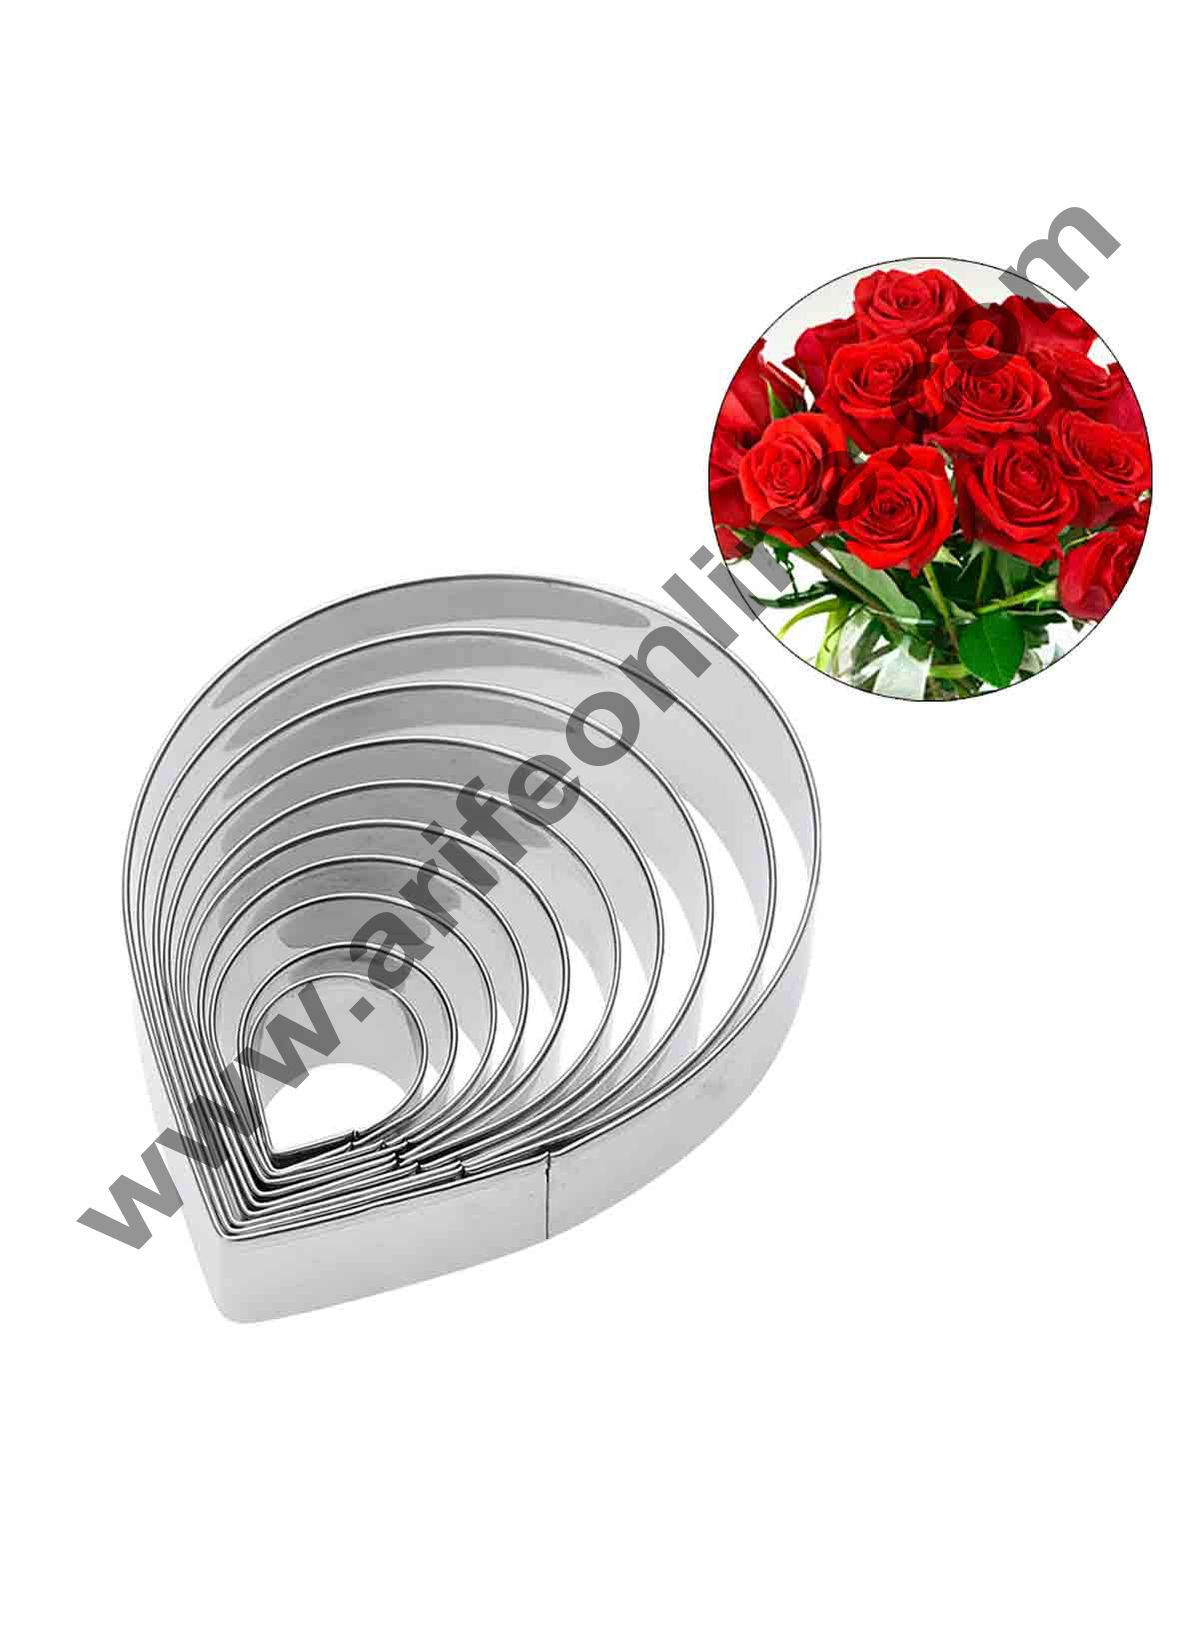 Cake Decor 10 Pcs Rose Petal Cutter Bakeware Mould Biscuit Mould Set Sugar Arts Fondant Cake Decoration Tools